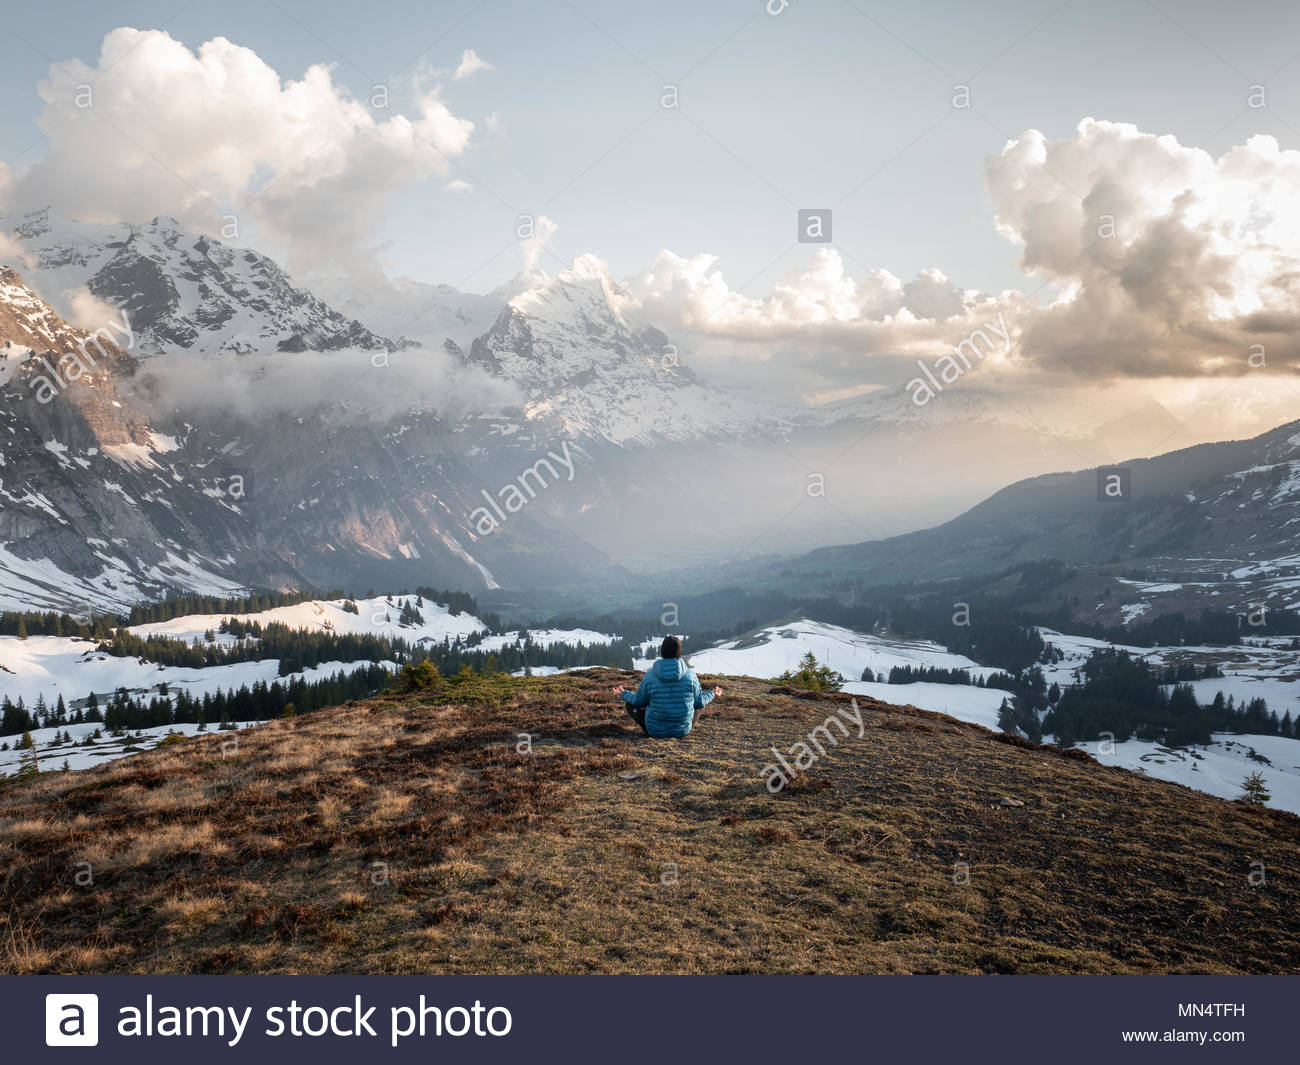 single man sitting in front of vast mountain range in the swiss alps meditating, sunrise light and snow covered mountains - Stock Image